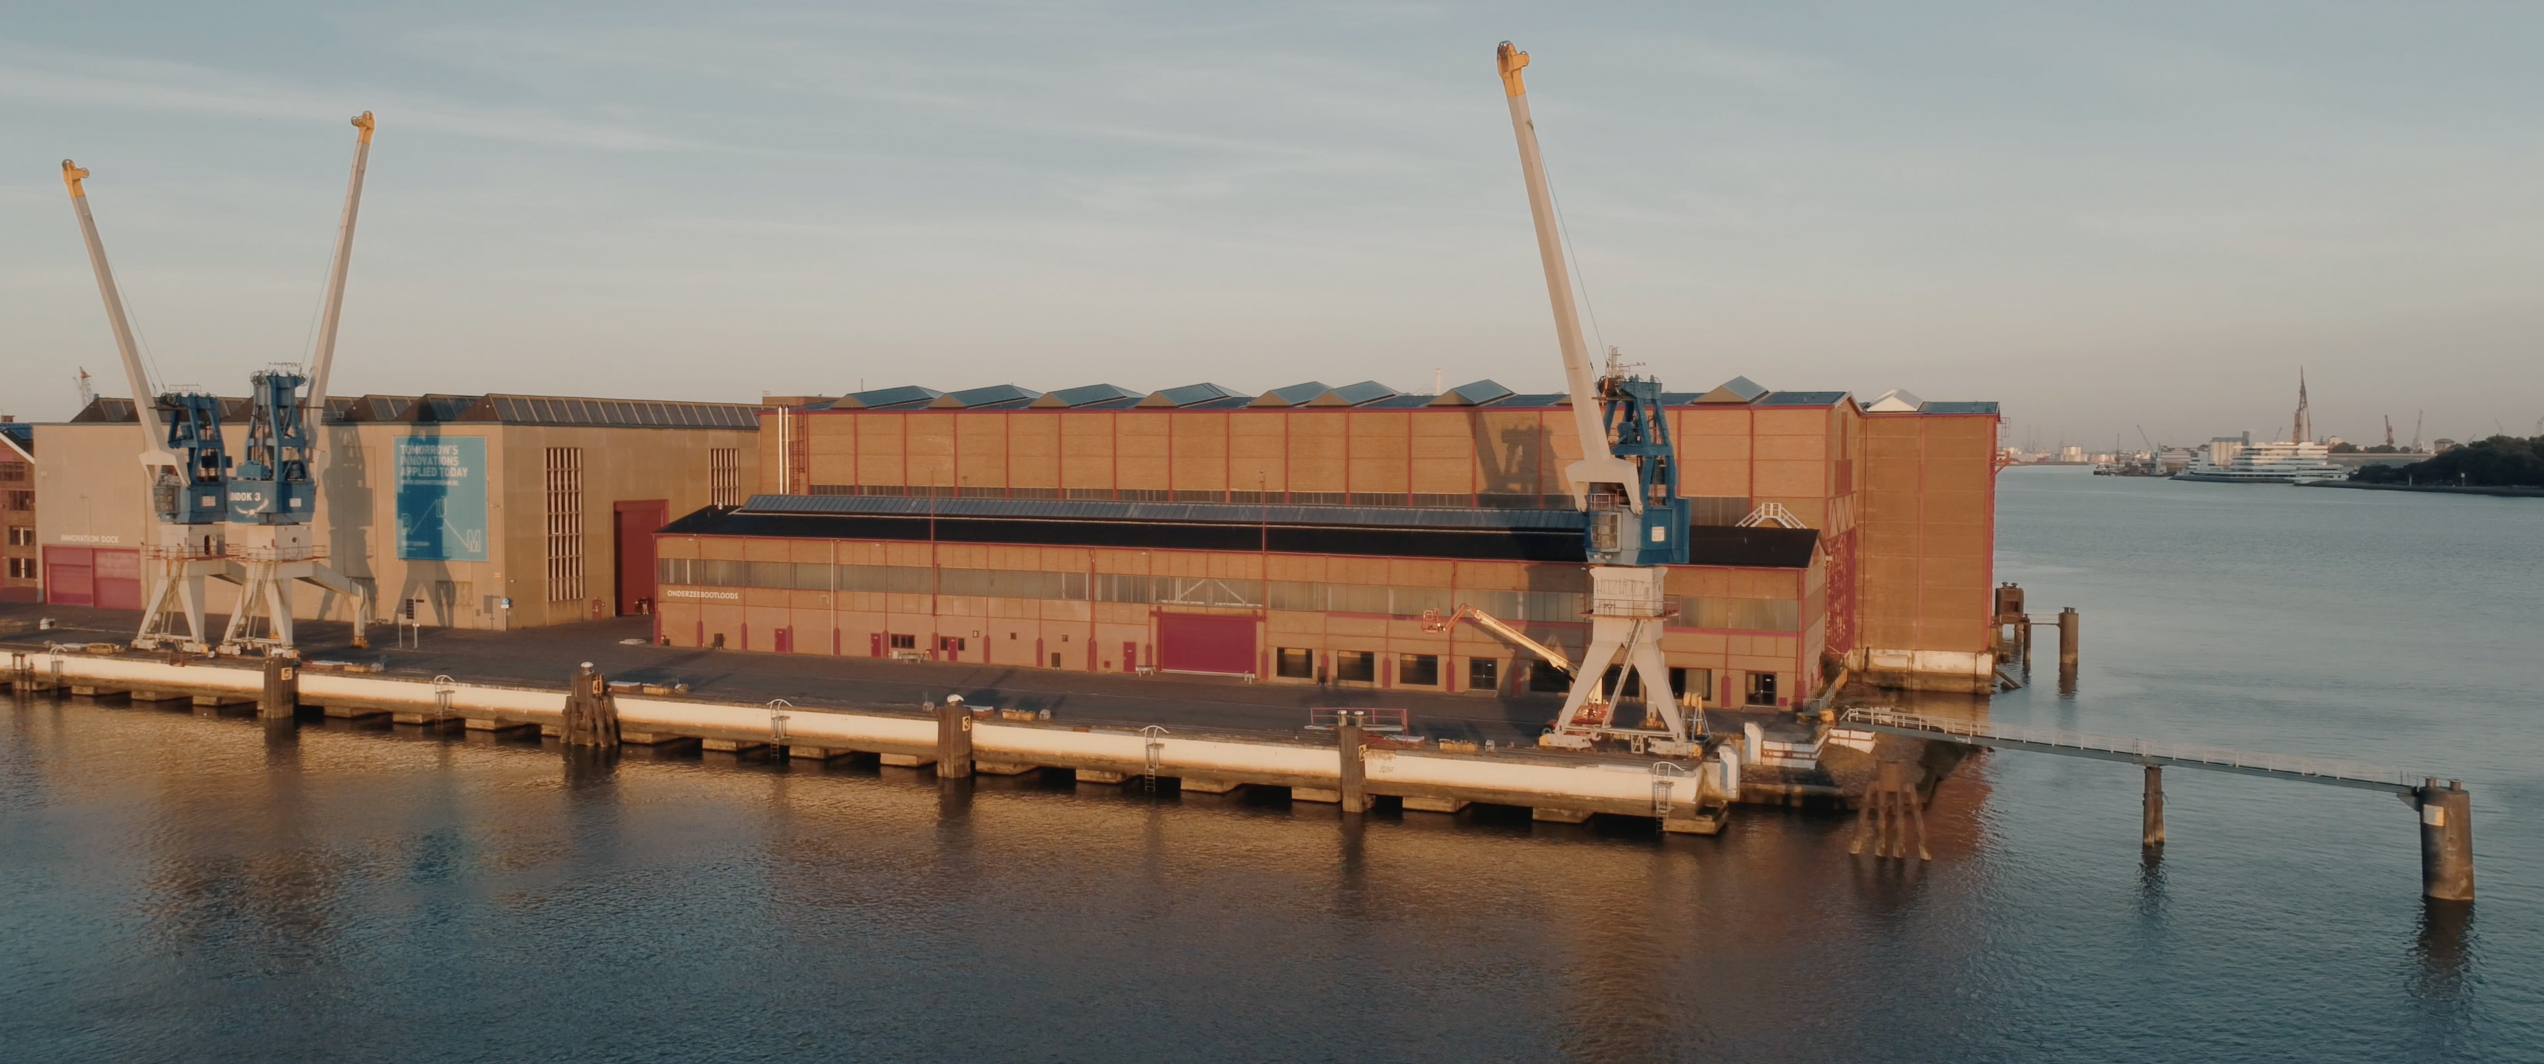 Rotterdam Rave Outdoor Festival 2019 relocates to RDM site in raw harbour area